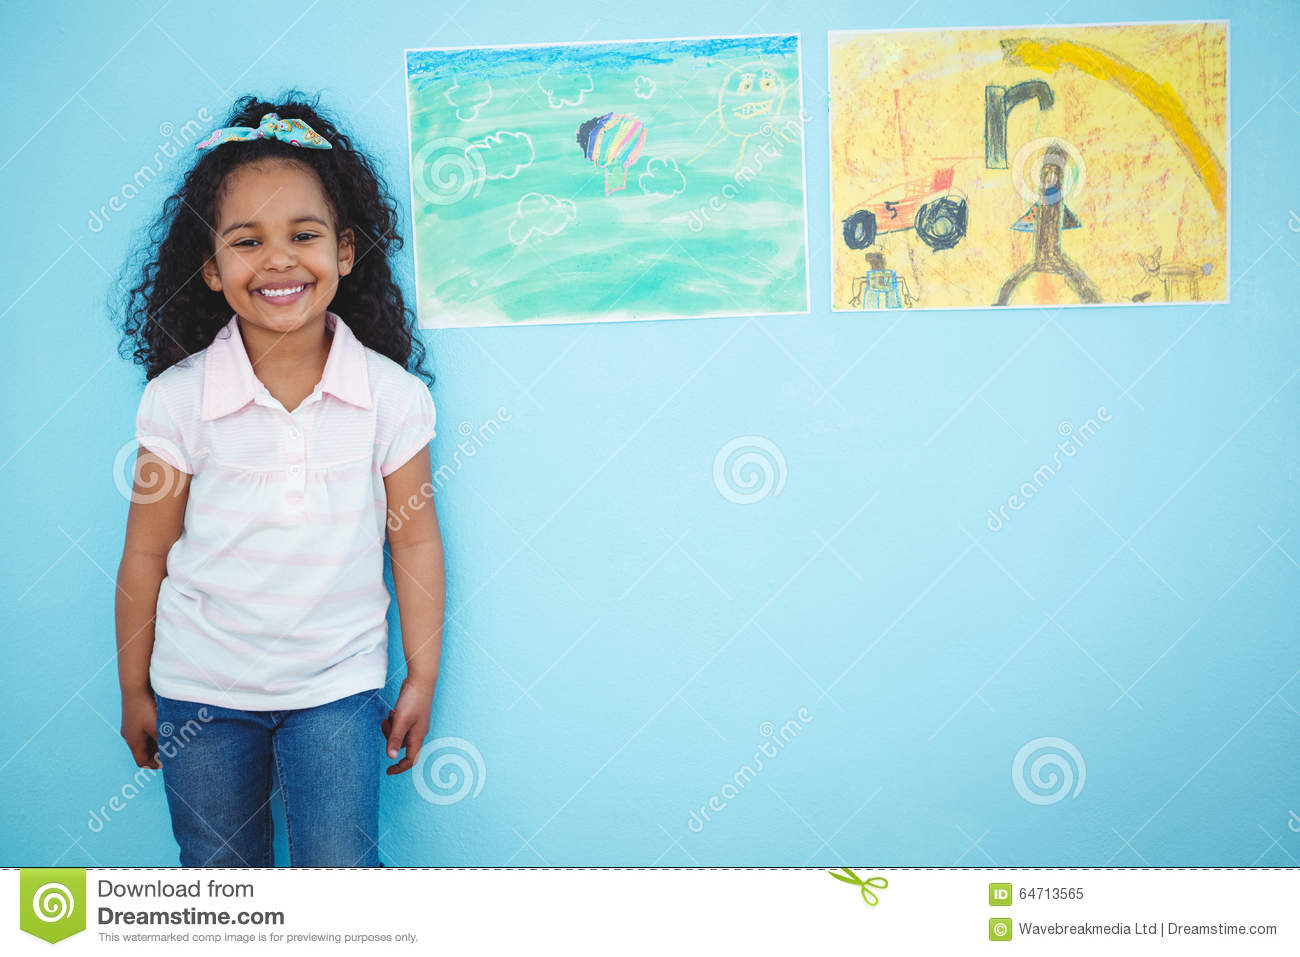 Cute girl next to drawings